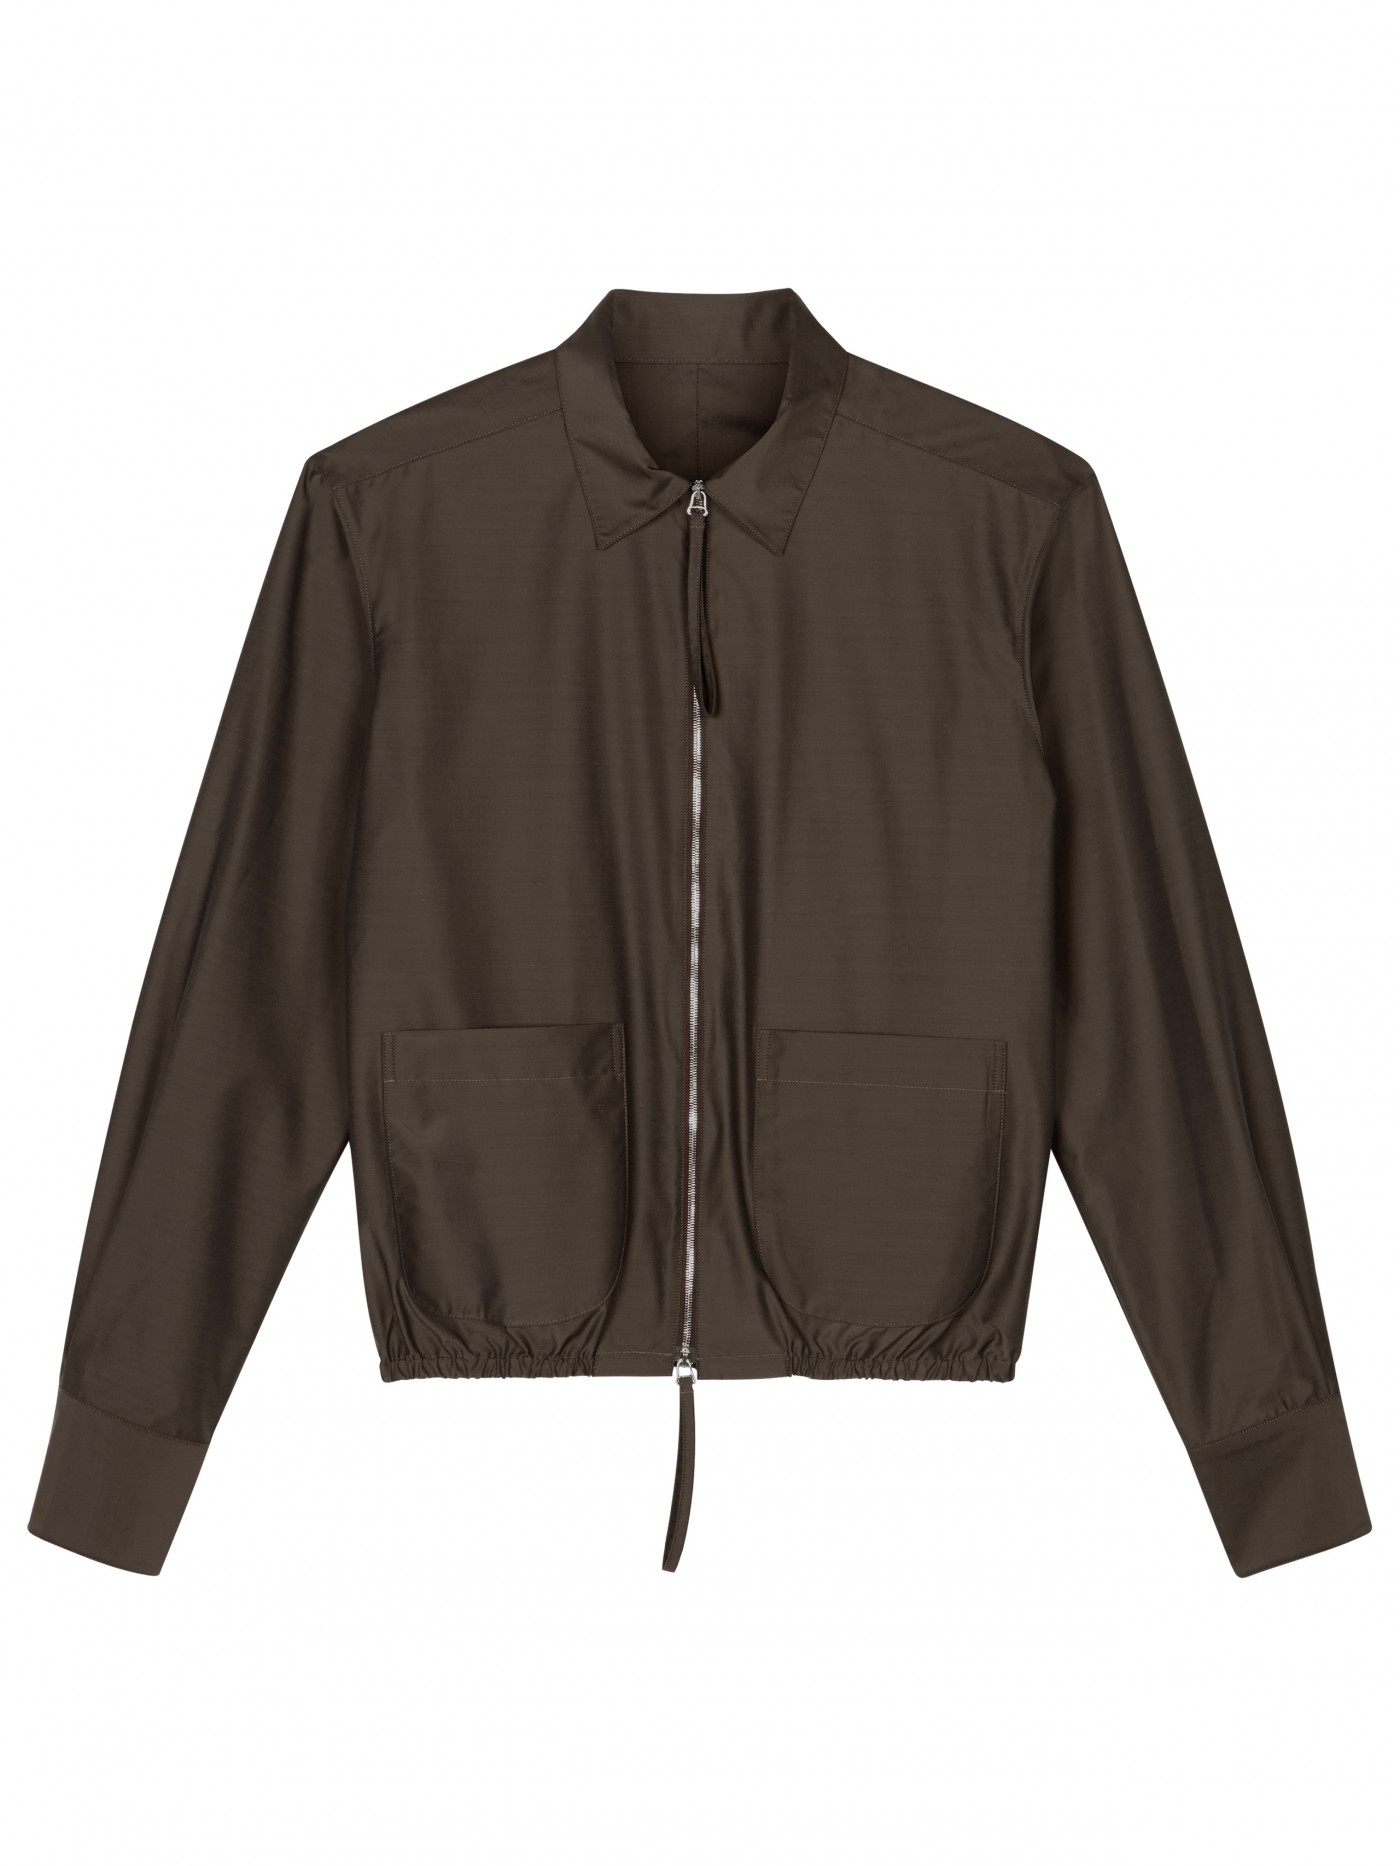 E. Tautz Brown Torquay Jacket